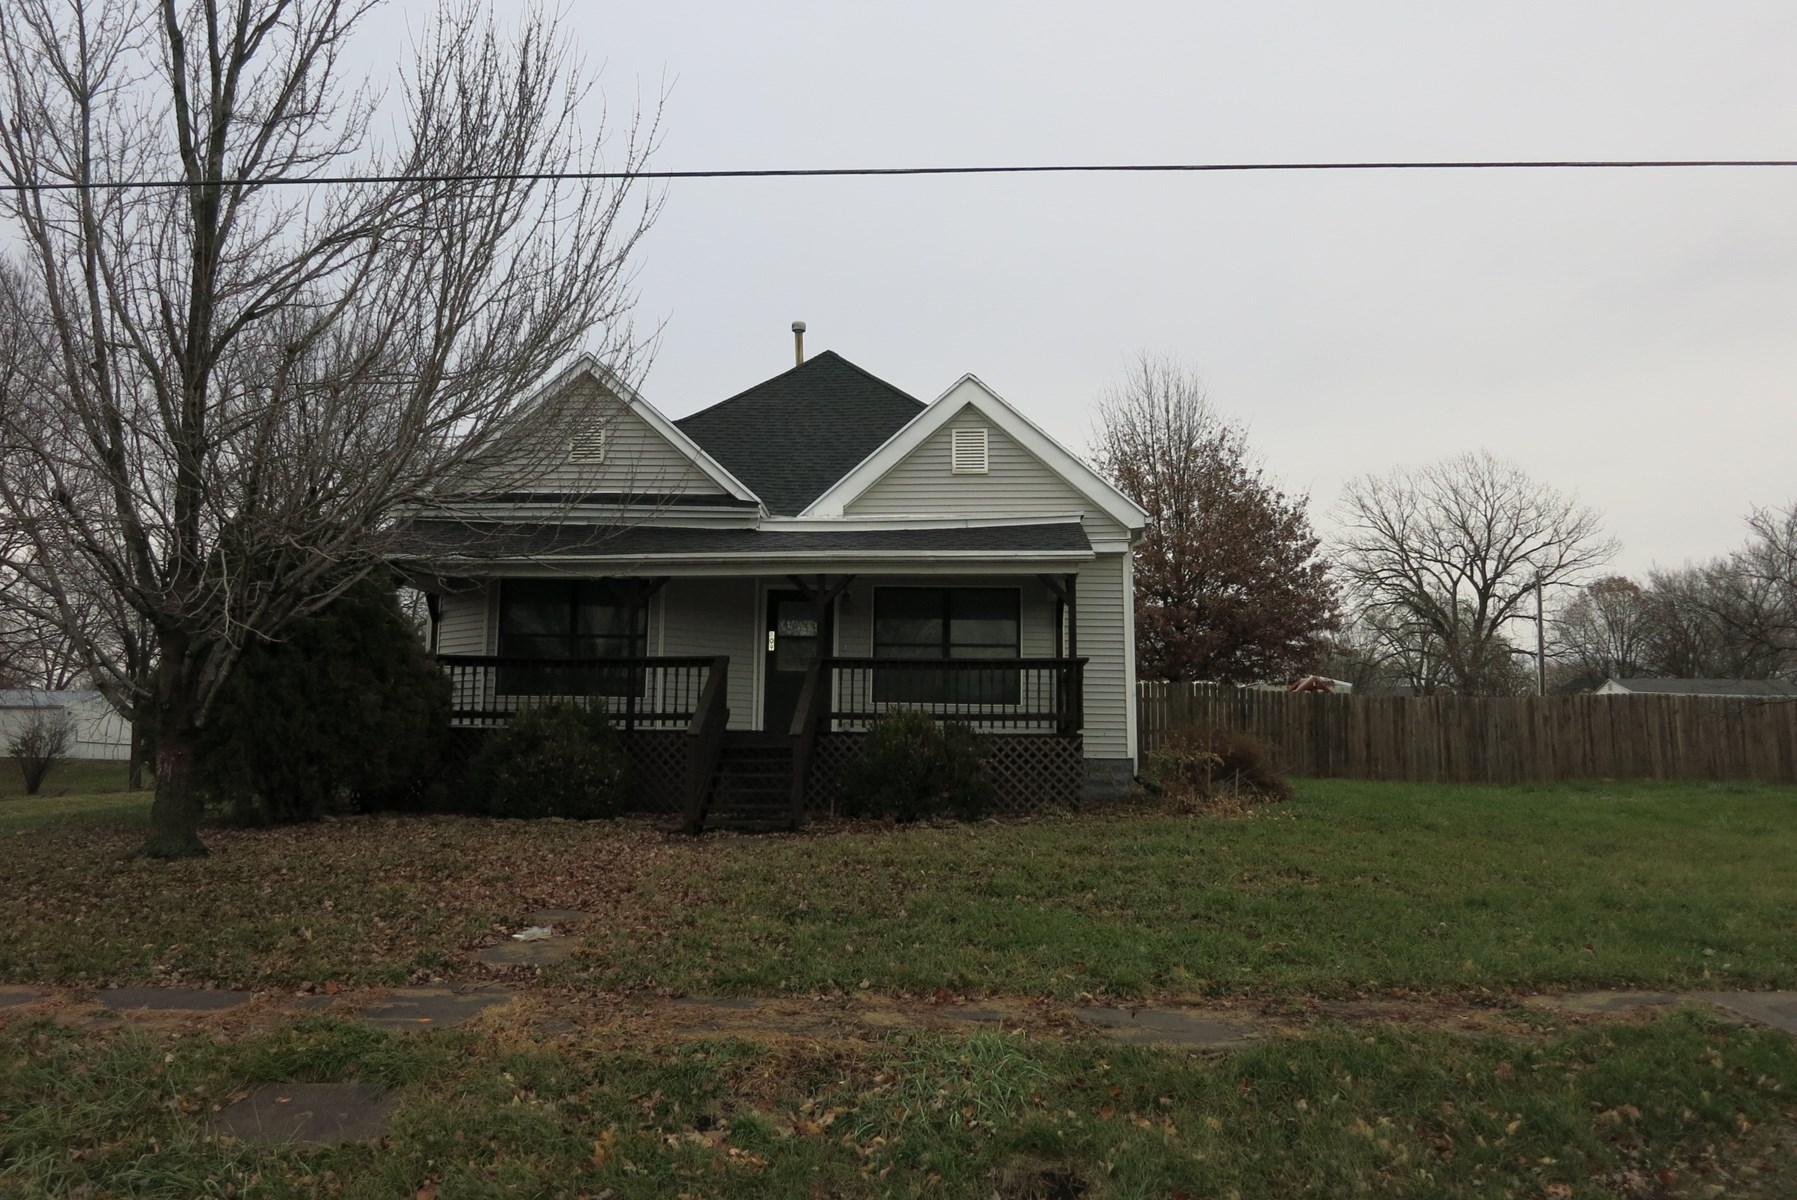 For Sale 3 BR Home with Carport on Large Corner Lot